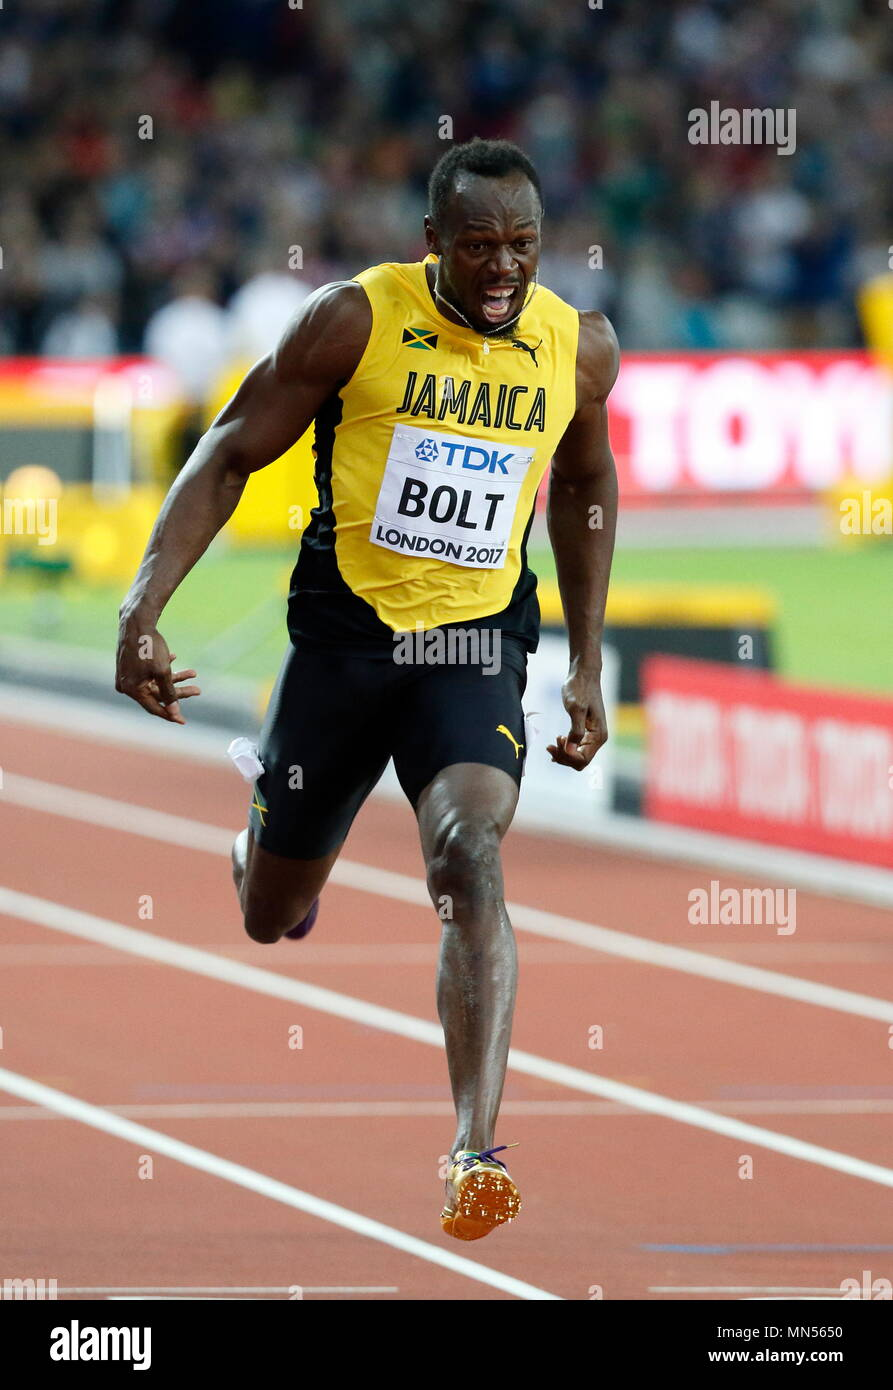 LONDON, ENGLAND - AUGUST 05: Usain Bolt of Jamaica  running in lane 4 of the Mens 100m Final reaches for the finish line during day two of the 16th IAAF World Athletics Championships London 2017 at The London Stadium on August 5, 2017 in London, United Kingdom. Photo by Paul Cunningham - Stock Image